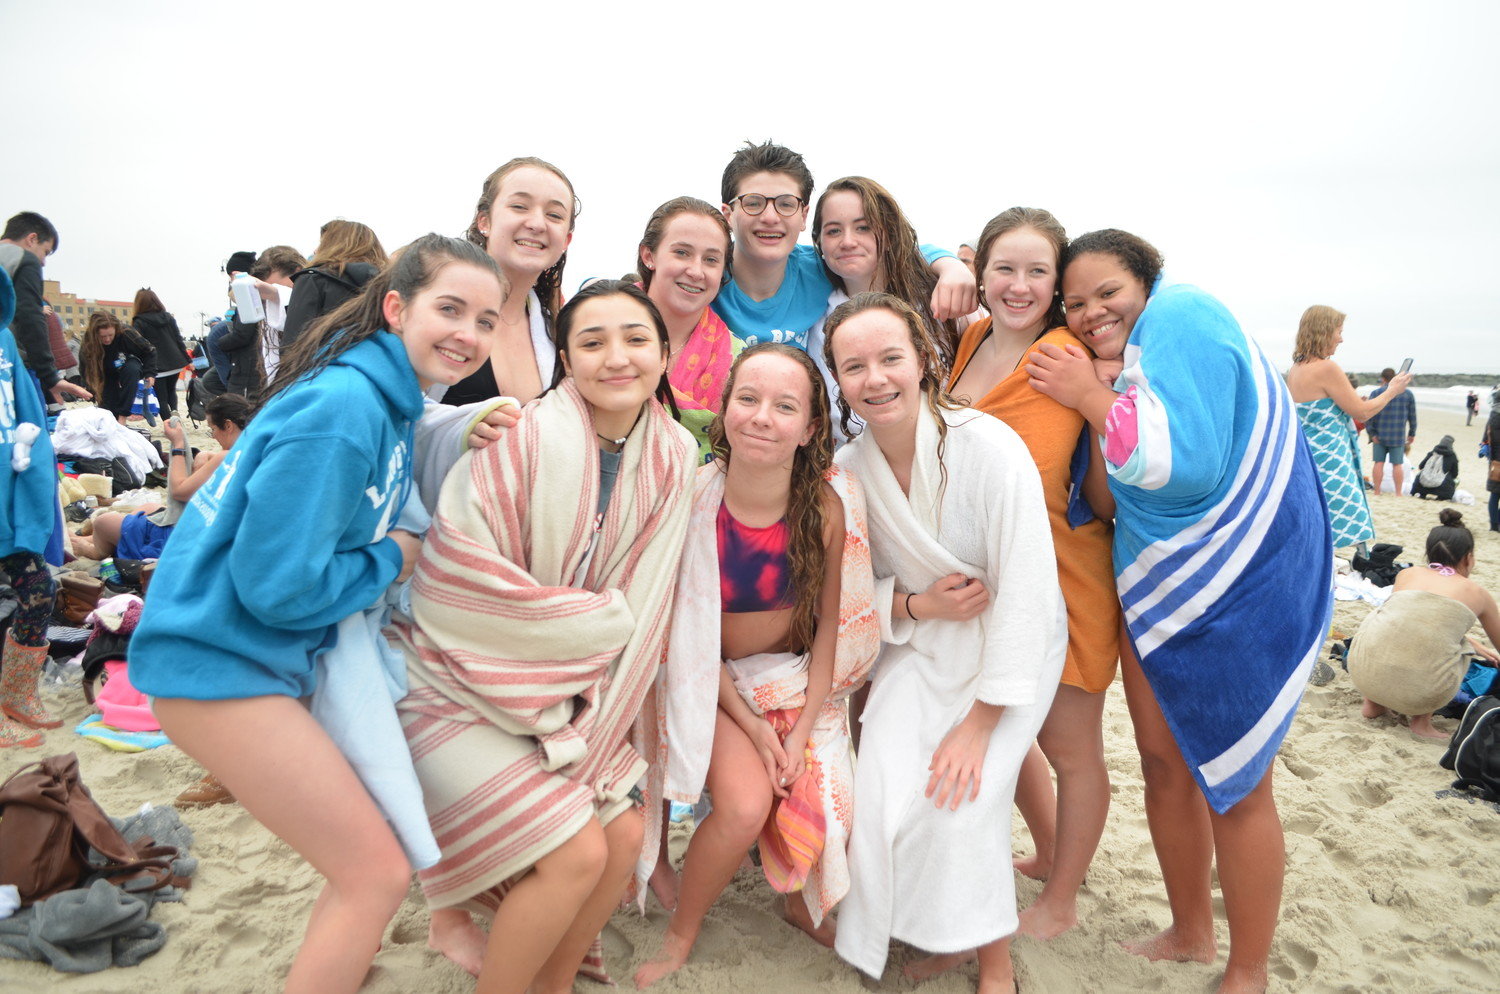 Long Beach residents Julianna Hurley, clockwise from left, Louise Dattolico, Gwen Price, Tori Price, Summer Roberts, Marandi Ficklin, Julia Meyers, Dylan Goldstein, Heather McAvoy and Holly McAvoy took the plunge on Sunday to support the Make-A-Wish Metro New York foundation.